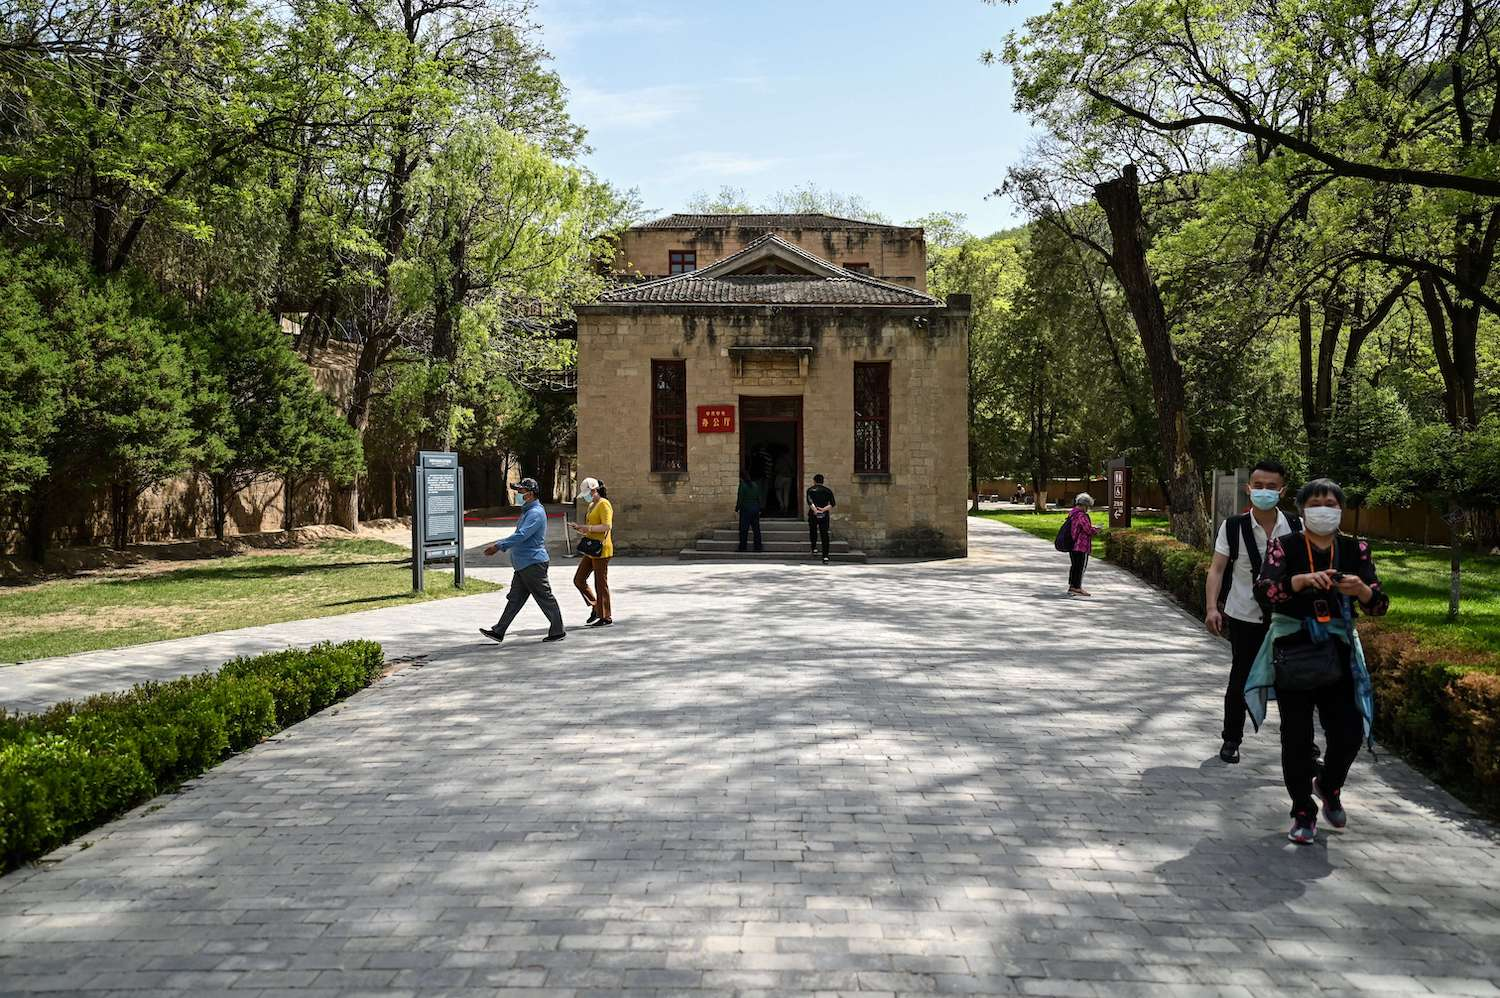 Tourists visit the Yangjialing Revolutionary Site in Yan'an, the headquarters of the Chinese Communist Party from 1936 to 1947, in Shaanxi province on May 10.